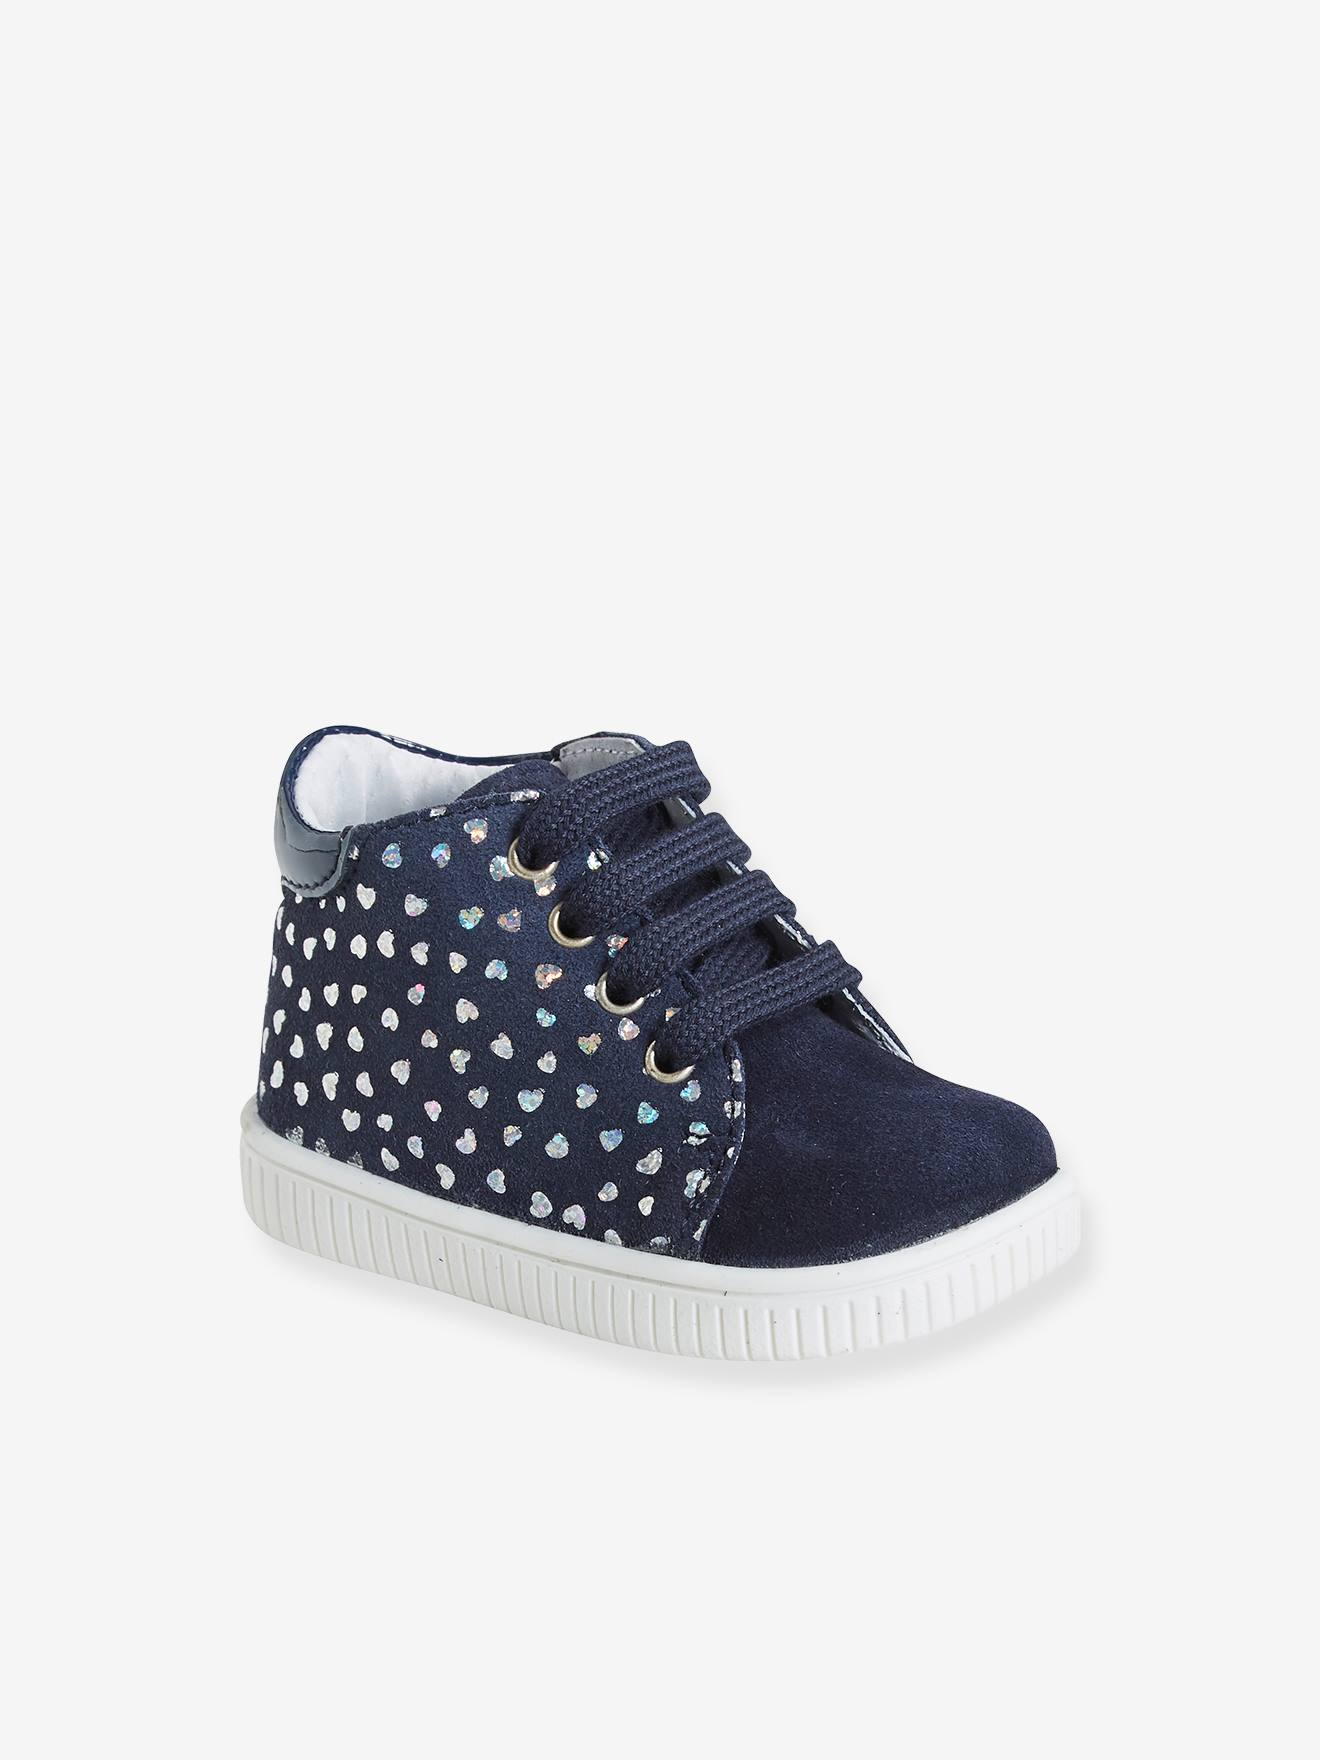 Baby Shoes With Ankle Support : shoes, ankle, support, Leather, Ankle, Boots, Girls,, Designed, First, Steps, Printed,, Shoes